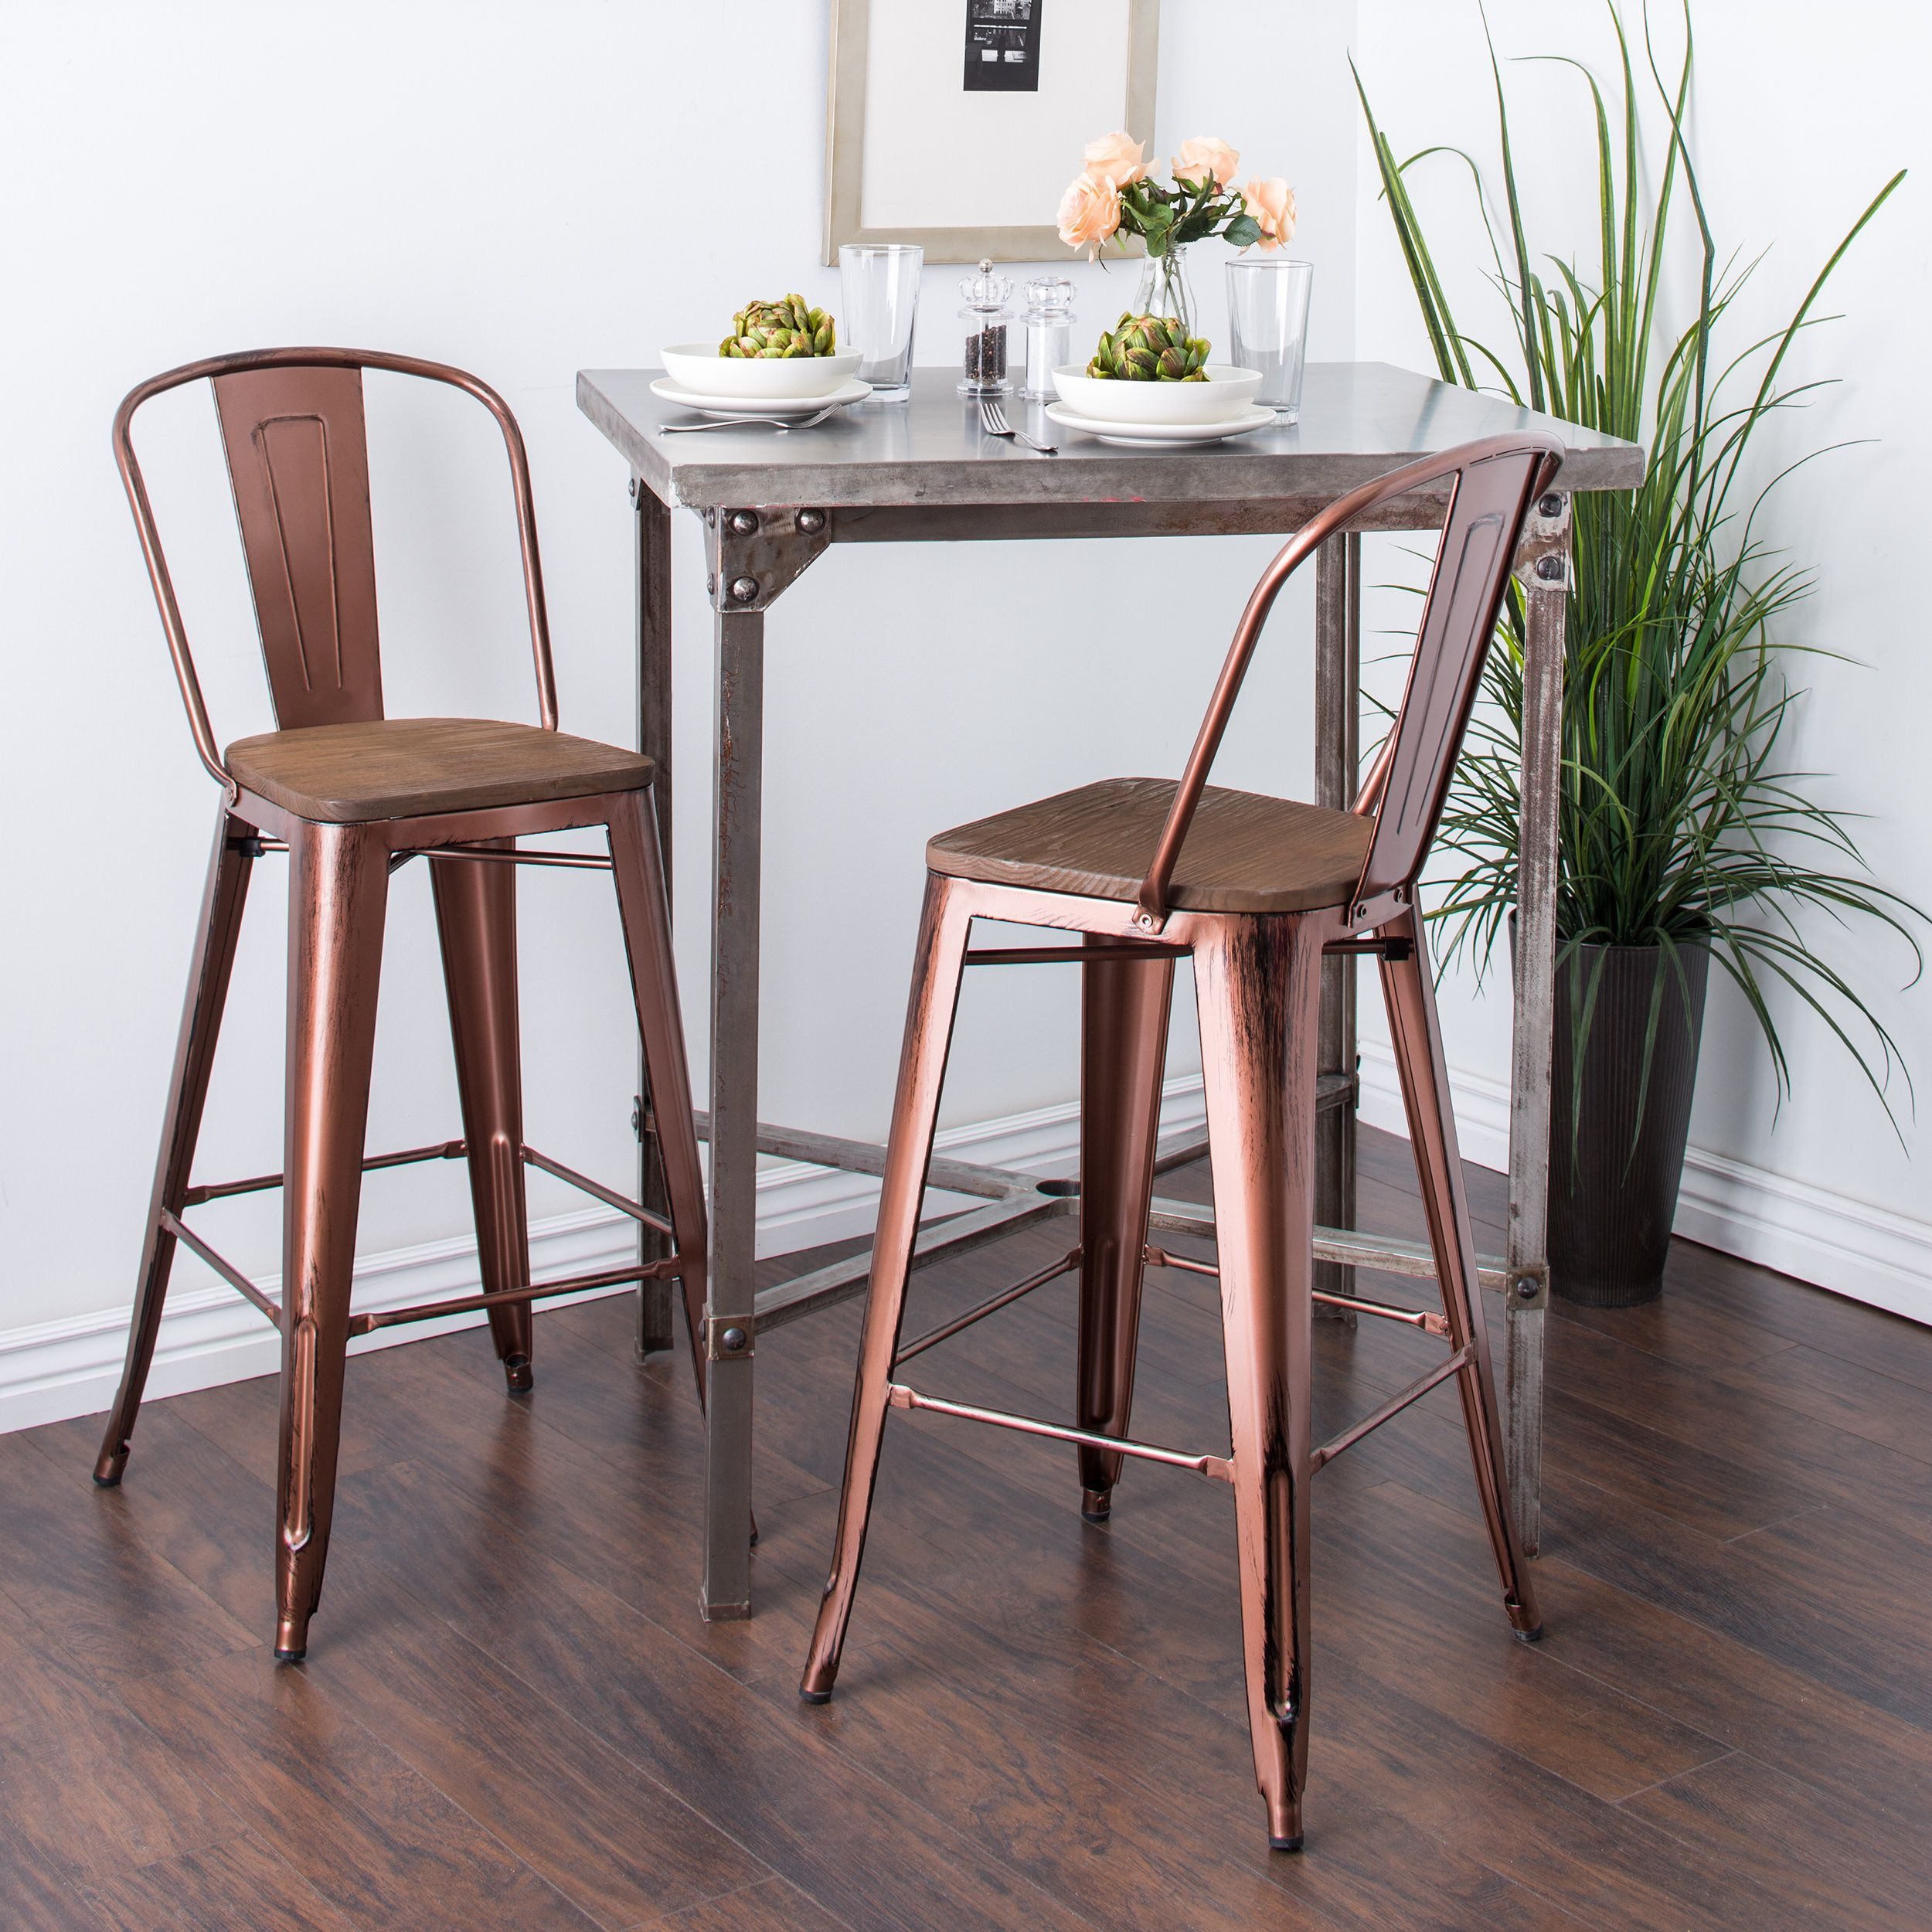 30 Inch Wood Seat Brushed Copper Bistro Bar Stool Set Of 2